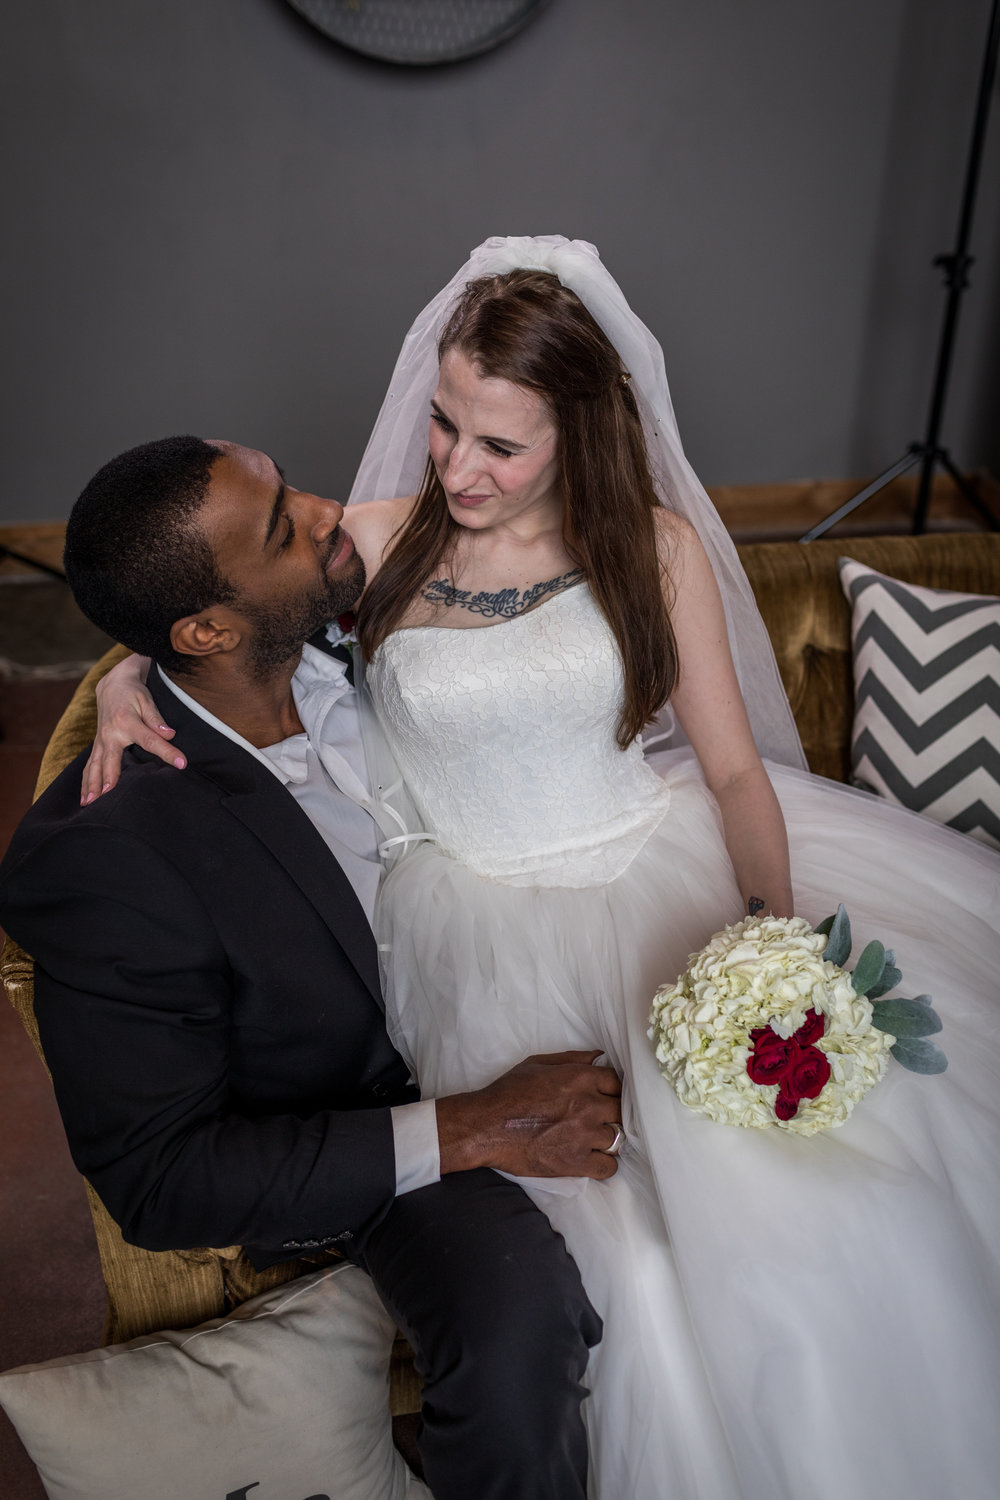 Kansas_City_Small_Wedding_Venue_Elope_Intimate_Ceremony_Budget_Affordable_15MinWedding-135.jpg